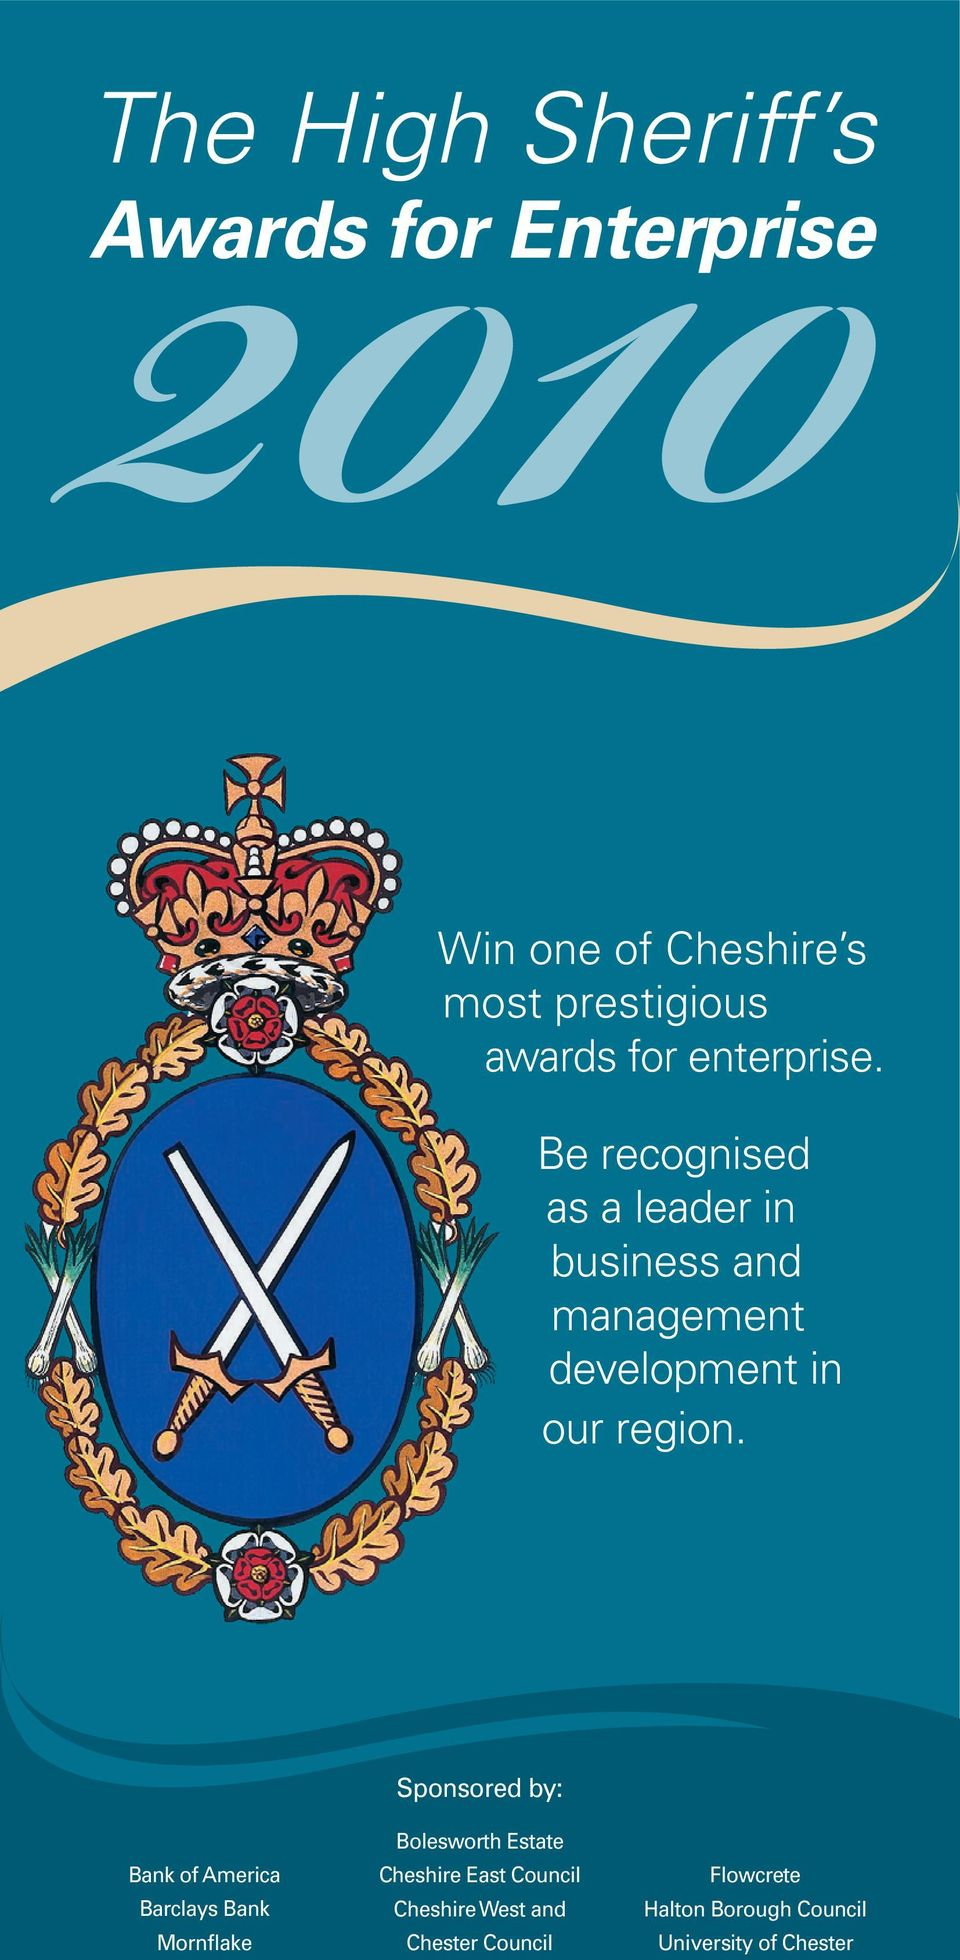 Be recognised as a leader in business and management development in our region.